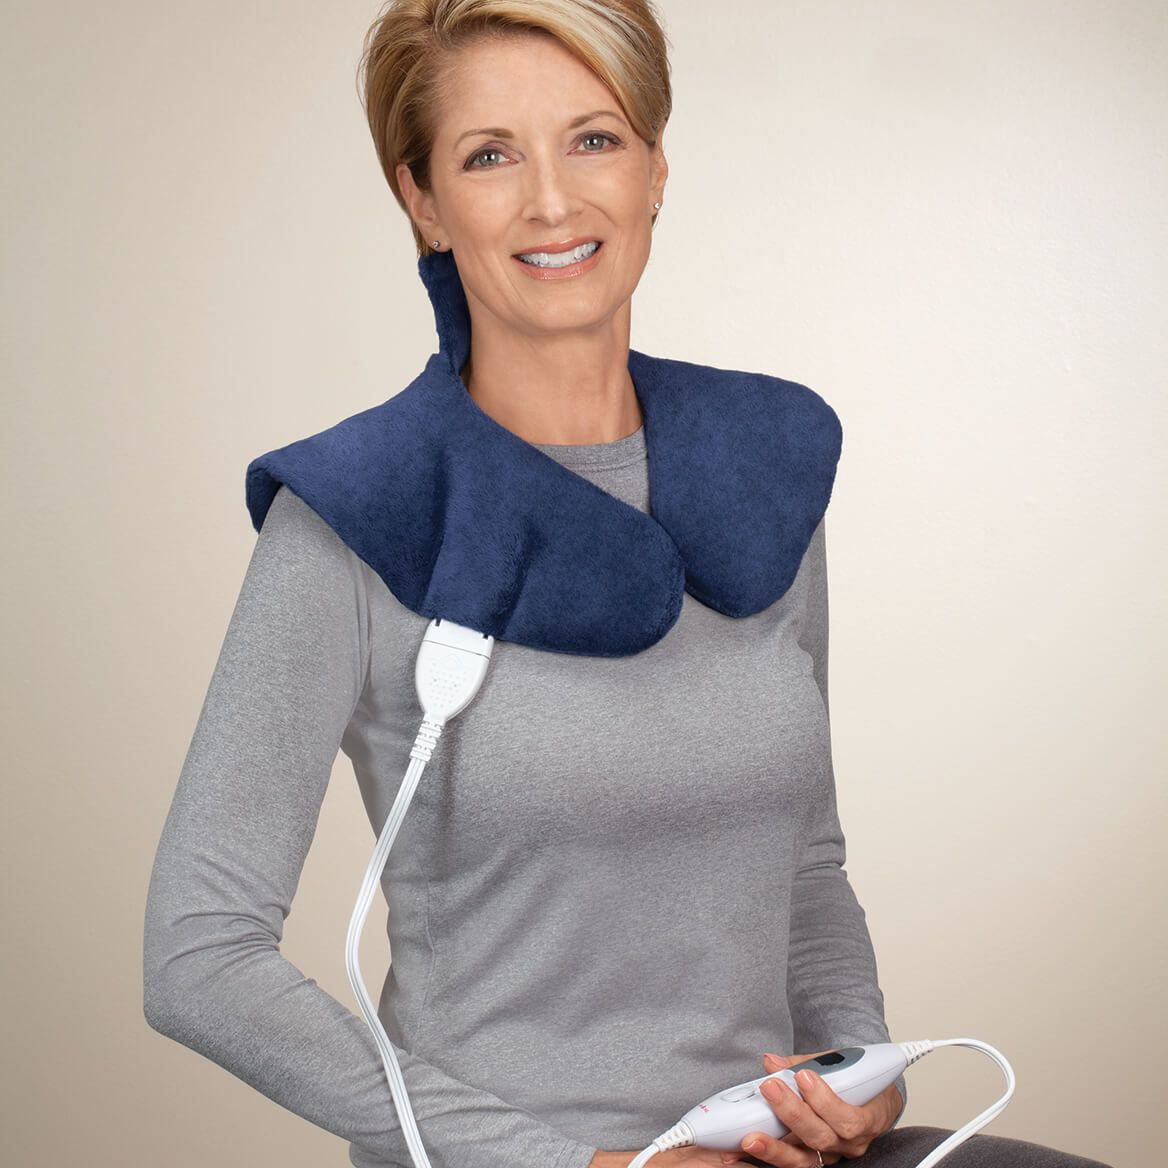 Plush Heating Pad Wrap for Shoulders & Neck-361752